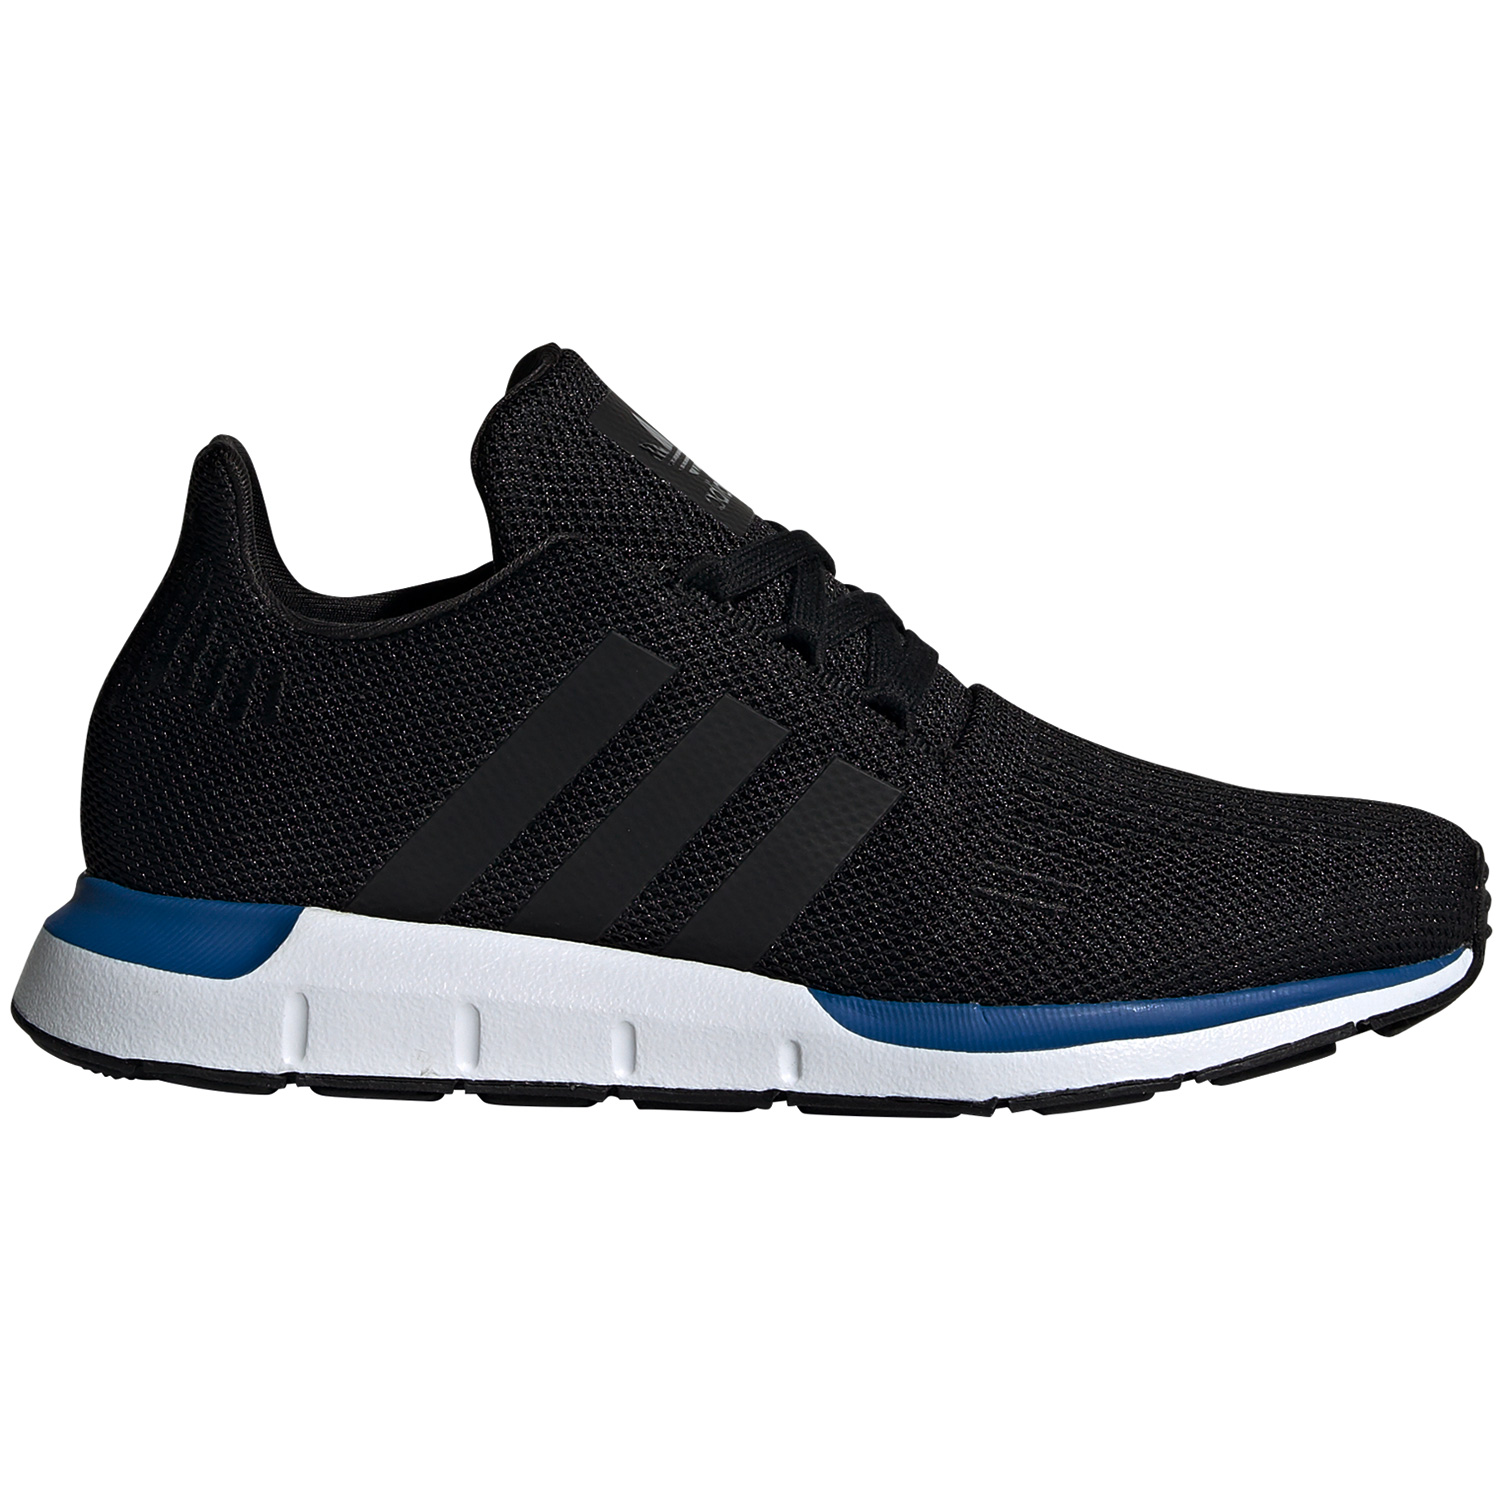 crazy price best authentic new images of adidas Originals Swift Run J Kinder Sneaker schwarz weiß blau EE7025